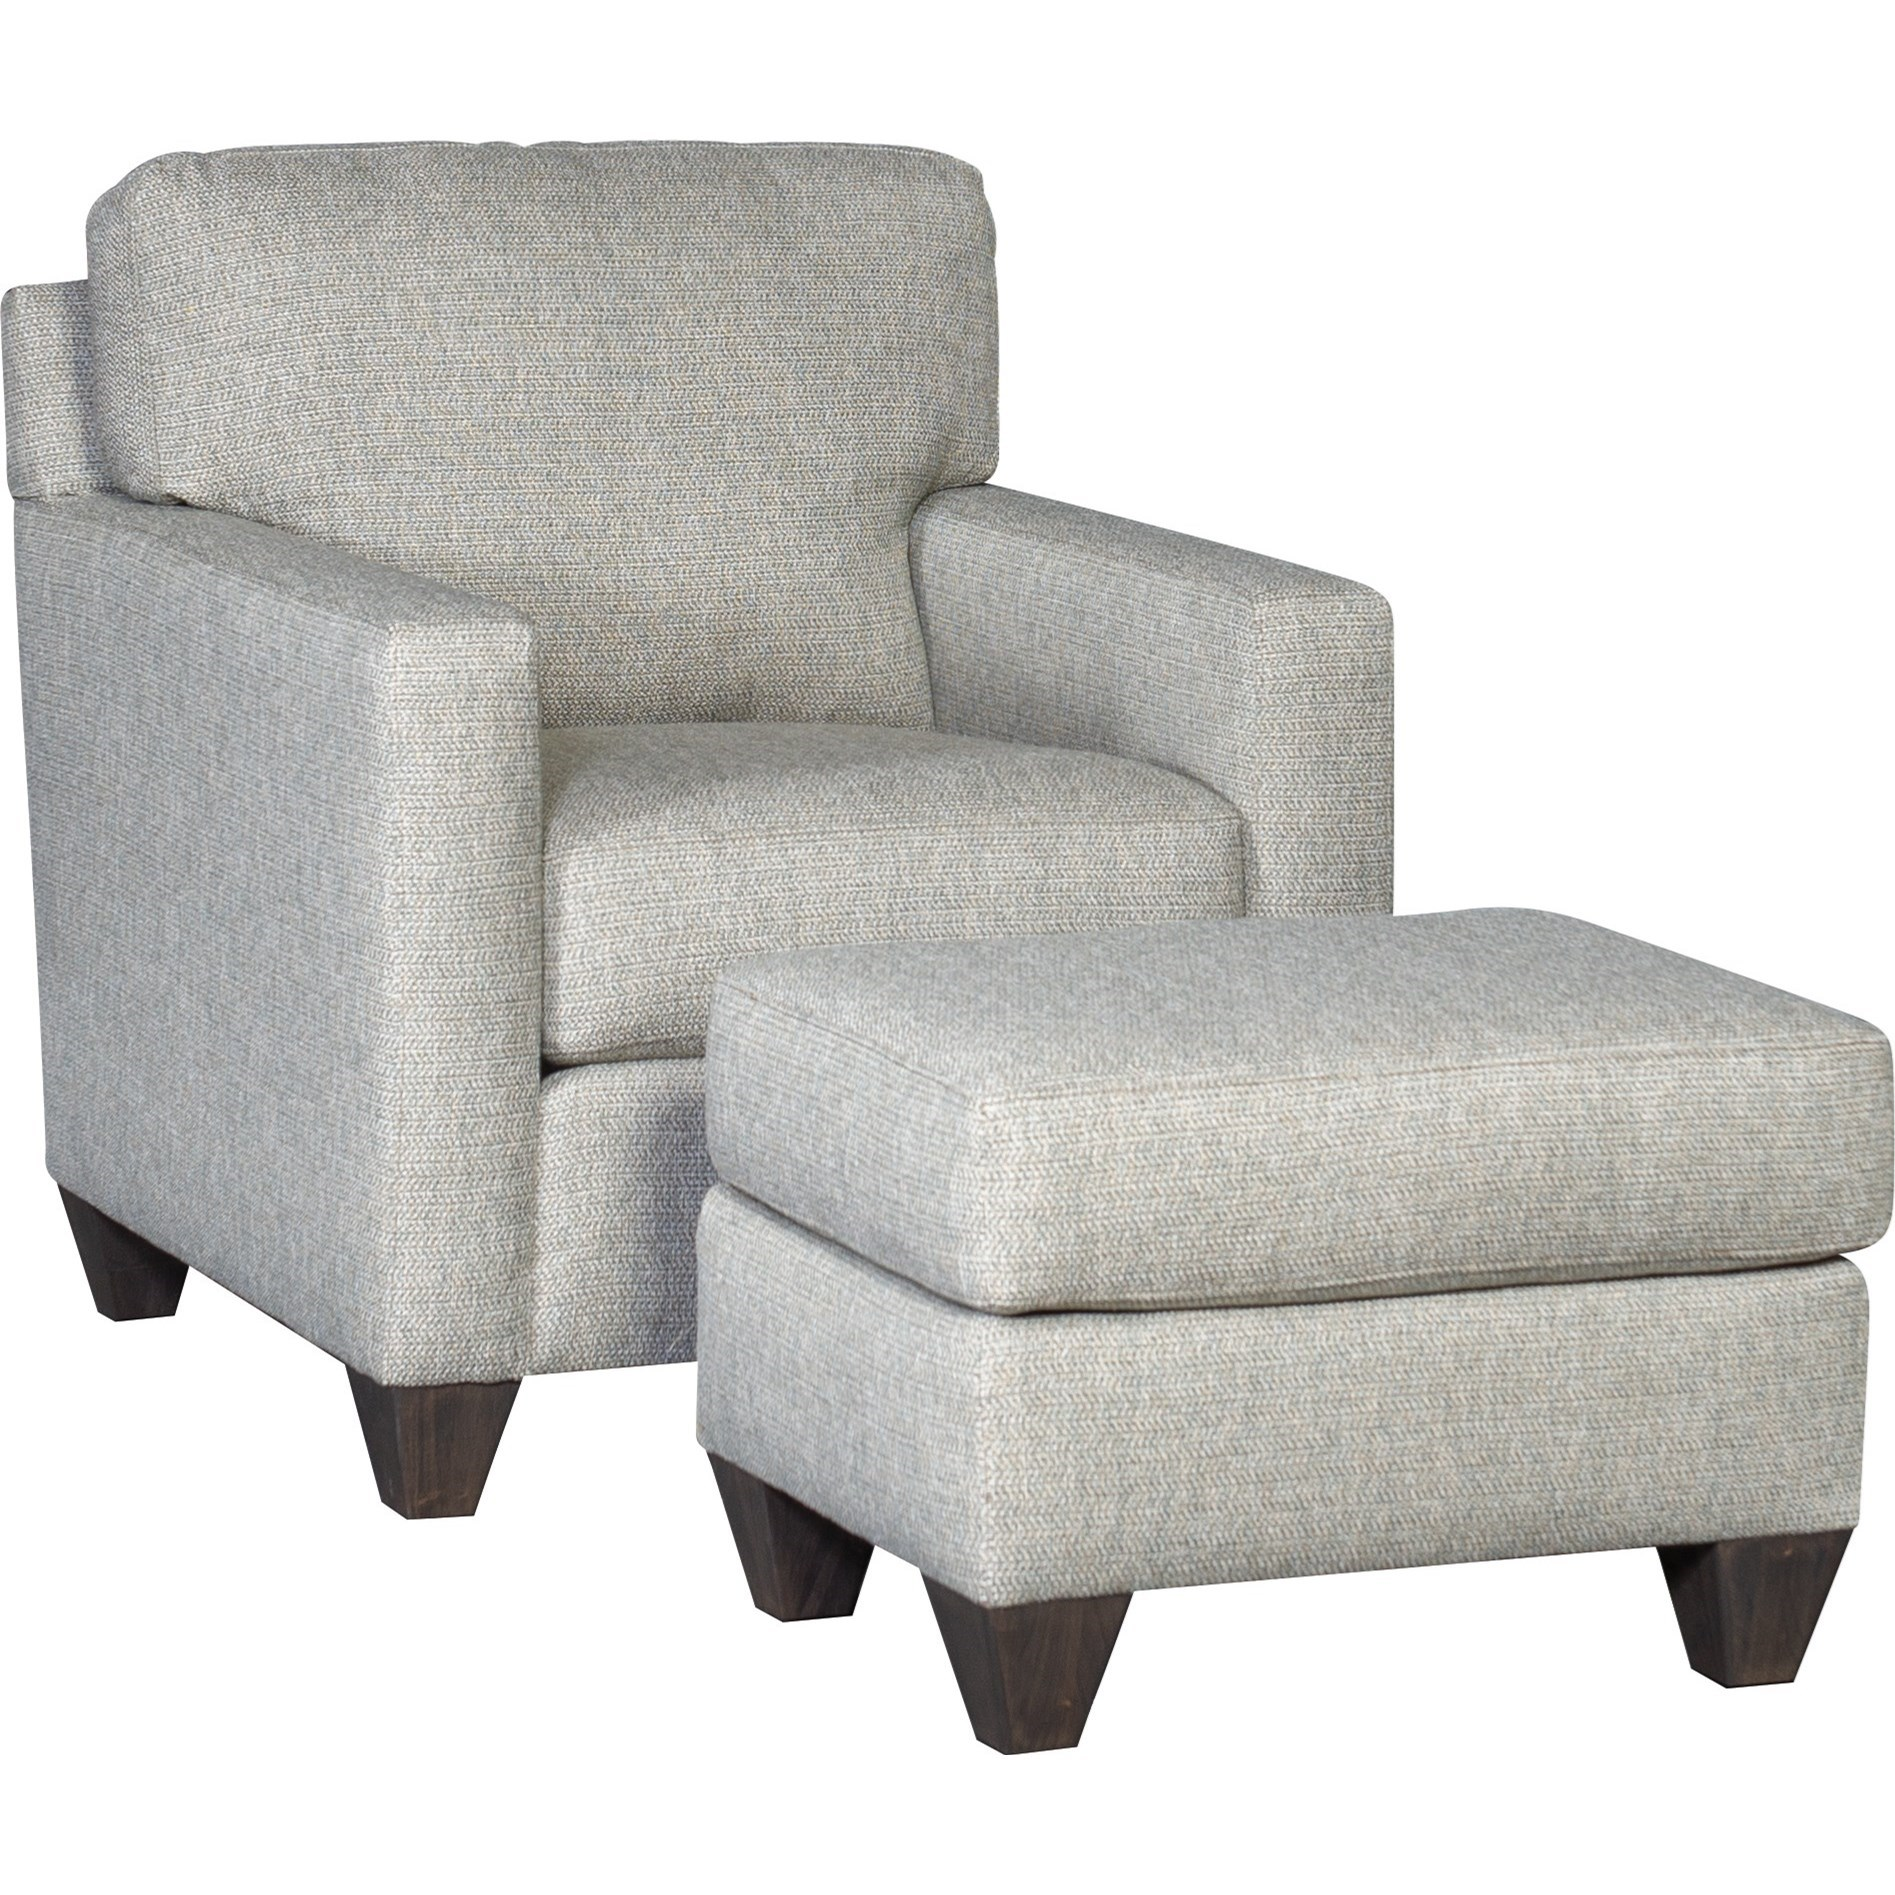 3488 Chair and Ottoman Set by Mayo at Wilson's Furniture